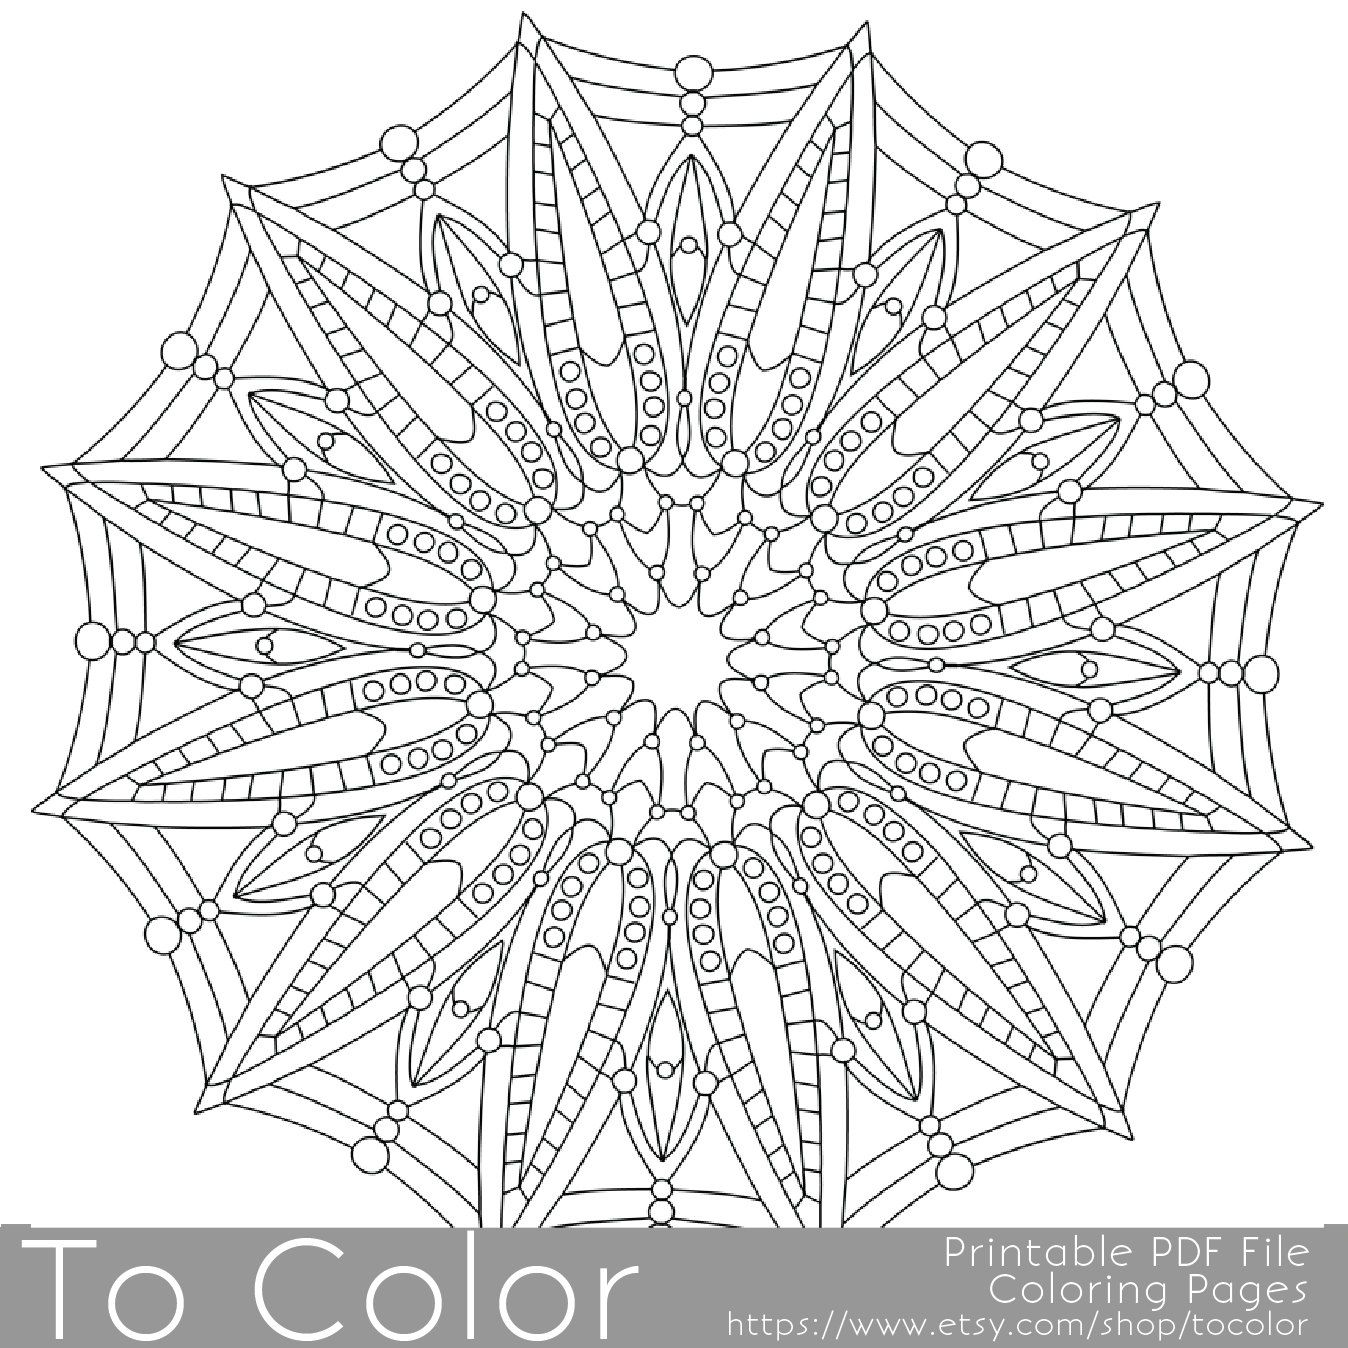 Detailed Printable Coloring Pages For Adults Gel Pens Mandala Pattern Pdf Jpg Instant Download Color Mandala Coloring Pages Coloring Pages Coloring Books